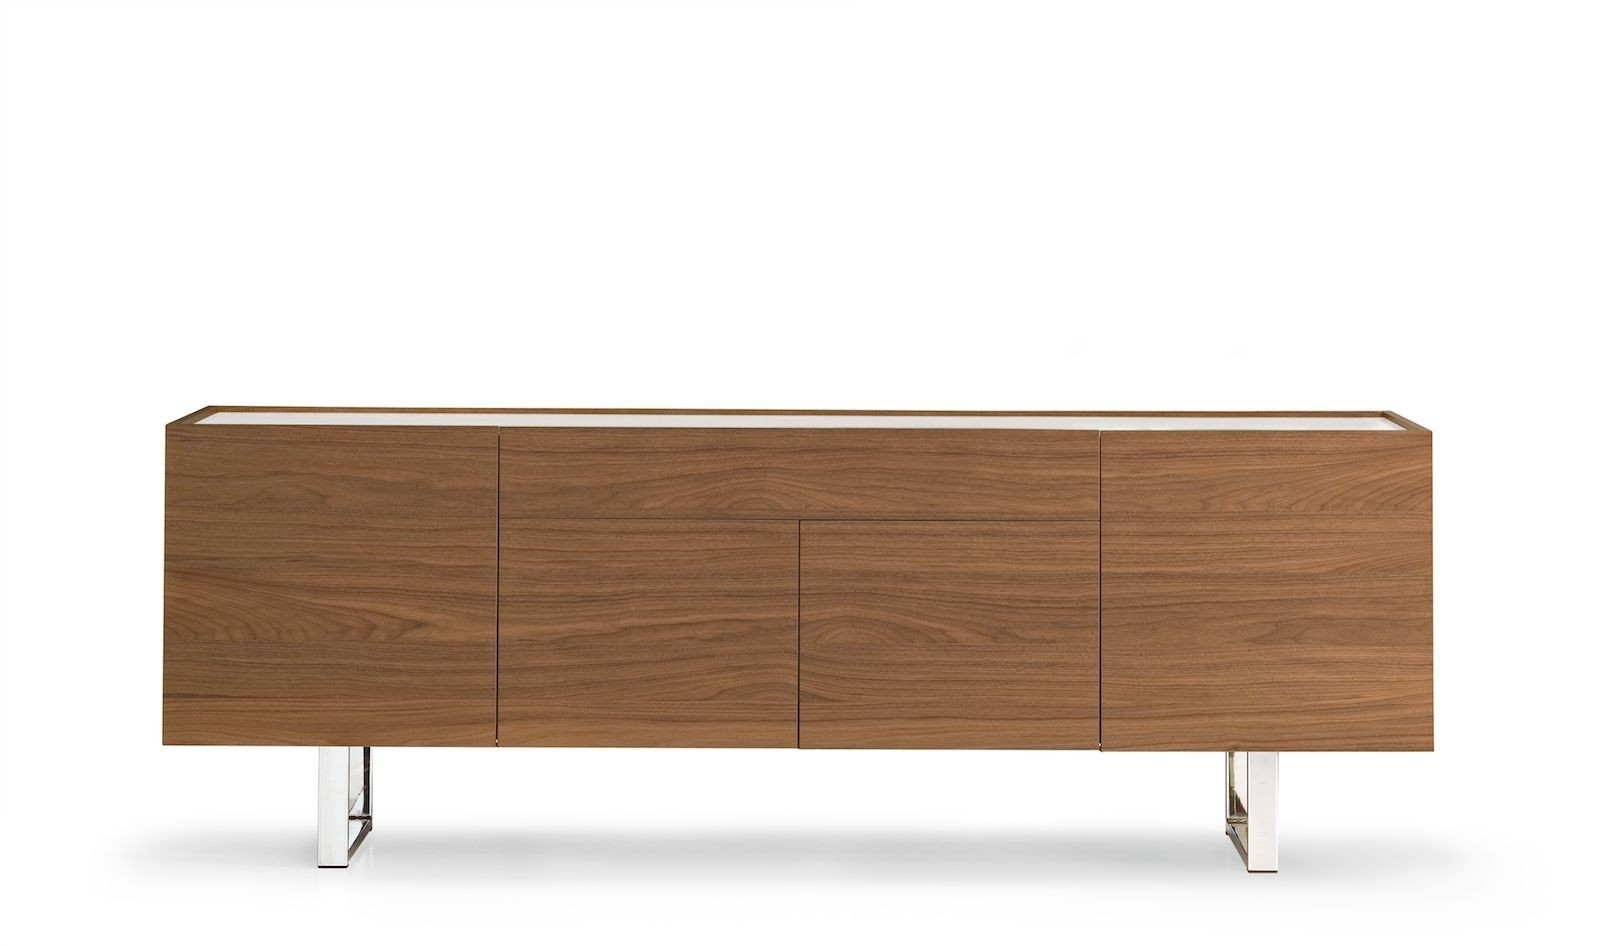 Calligaris Horizon 4 Door With Central Drawer Sideboard – Frank Mc Gowan in 4-Door/4-Drawer Metal Inserts Sideboards (Image 9 of 30)